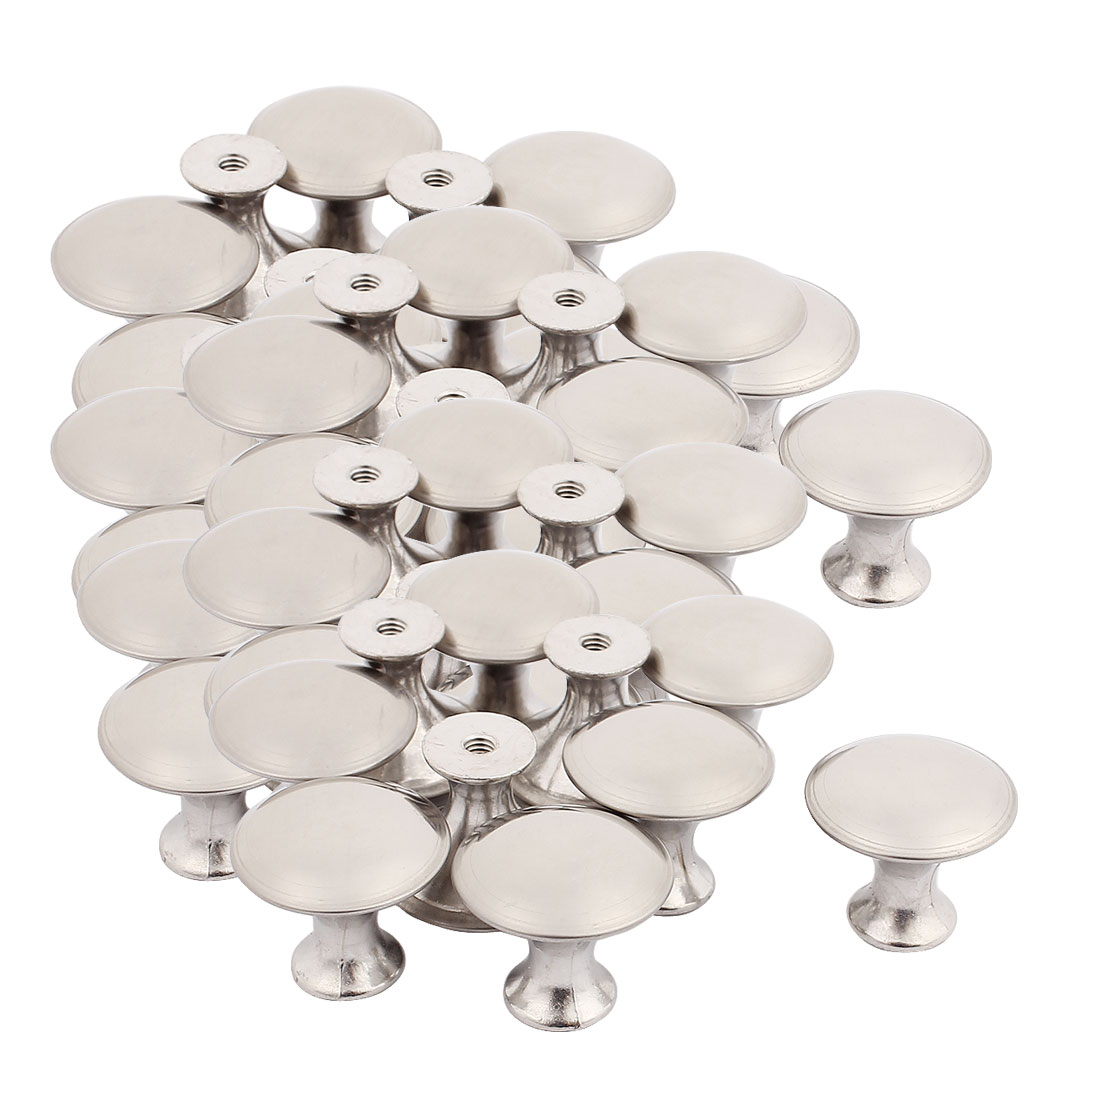 Chest Cabinet Stainless Steel Round Pull Knobs 23.5mmx20.5mm 50pcs